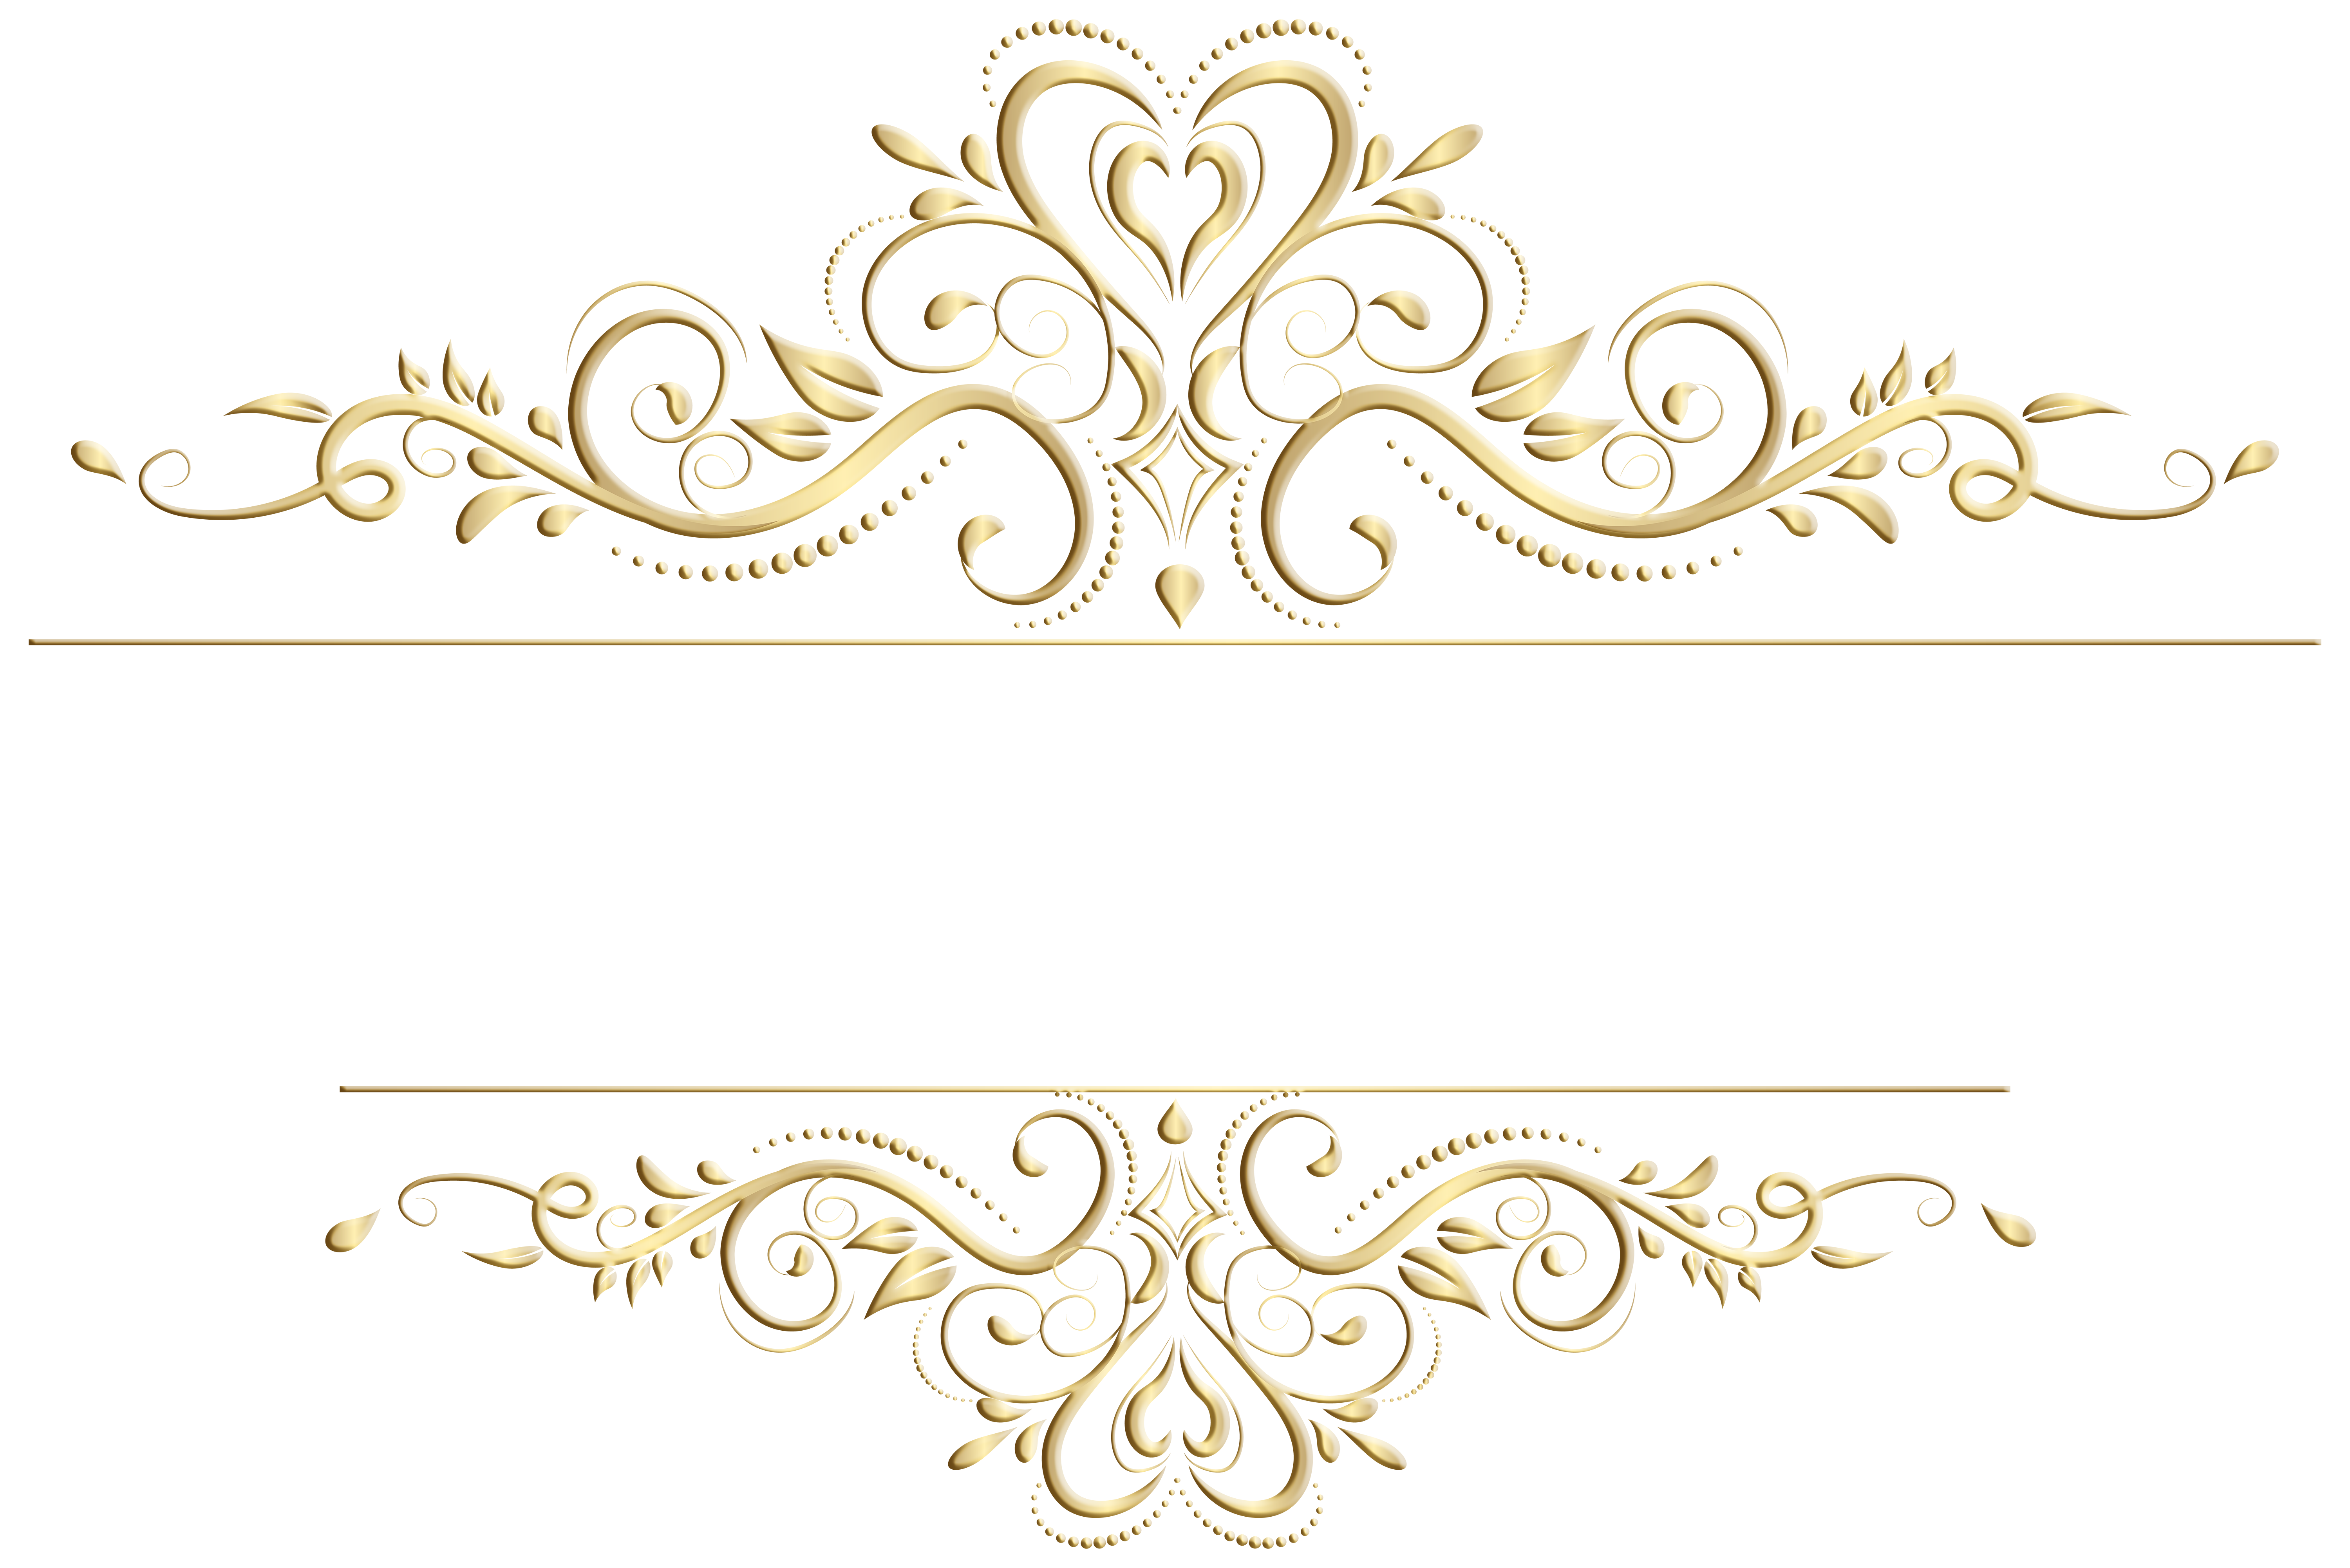 Transparent decoration title. Decorative element clip art